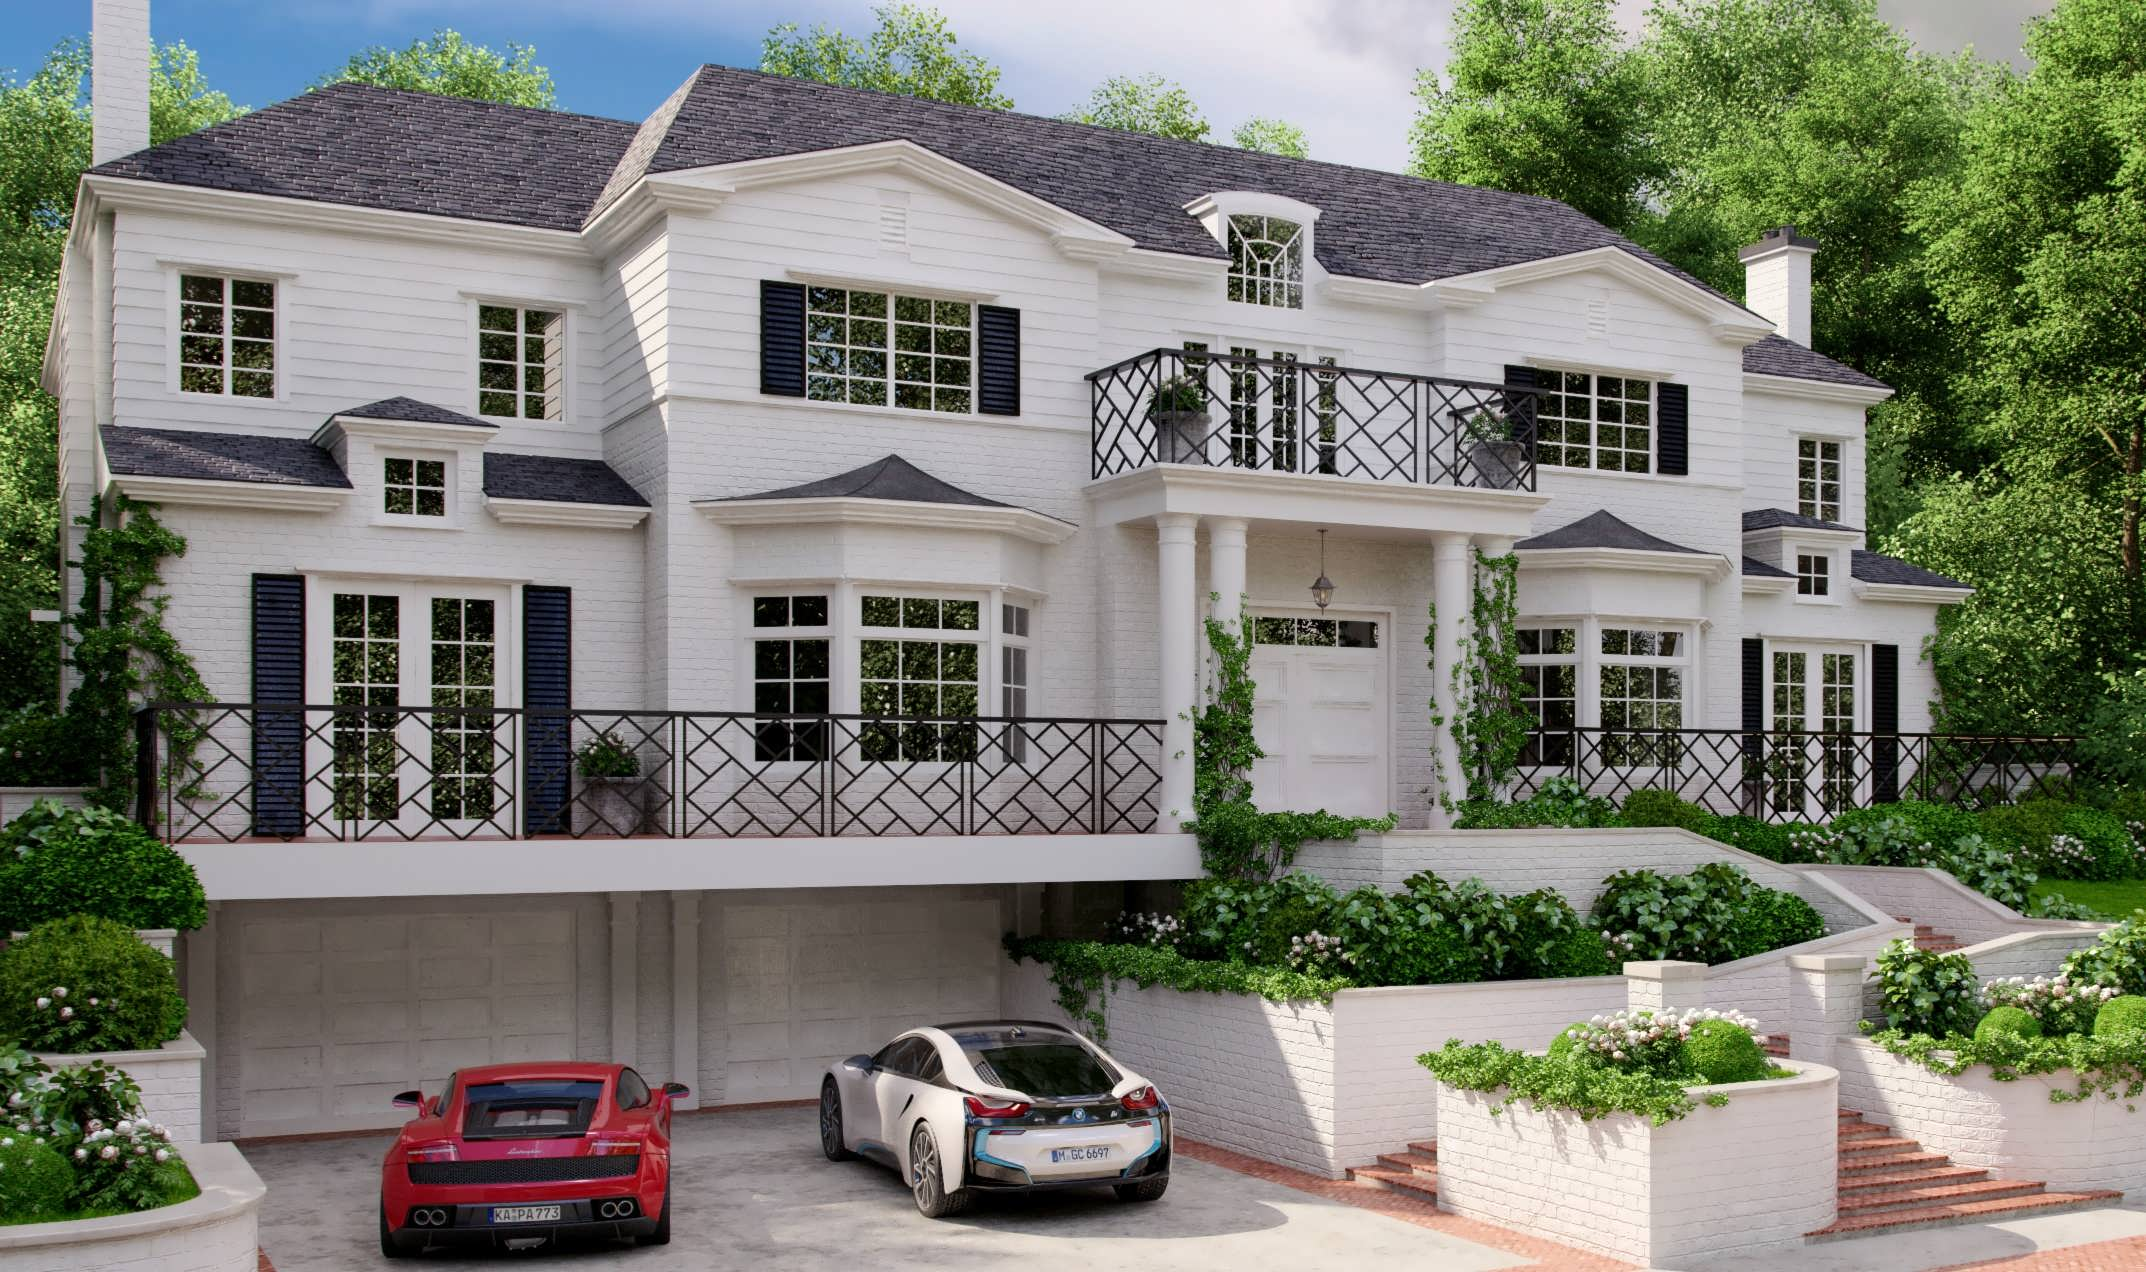 la-traditional-c-and-c-partners-contractors-los-angeles-architects.jpg